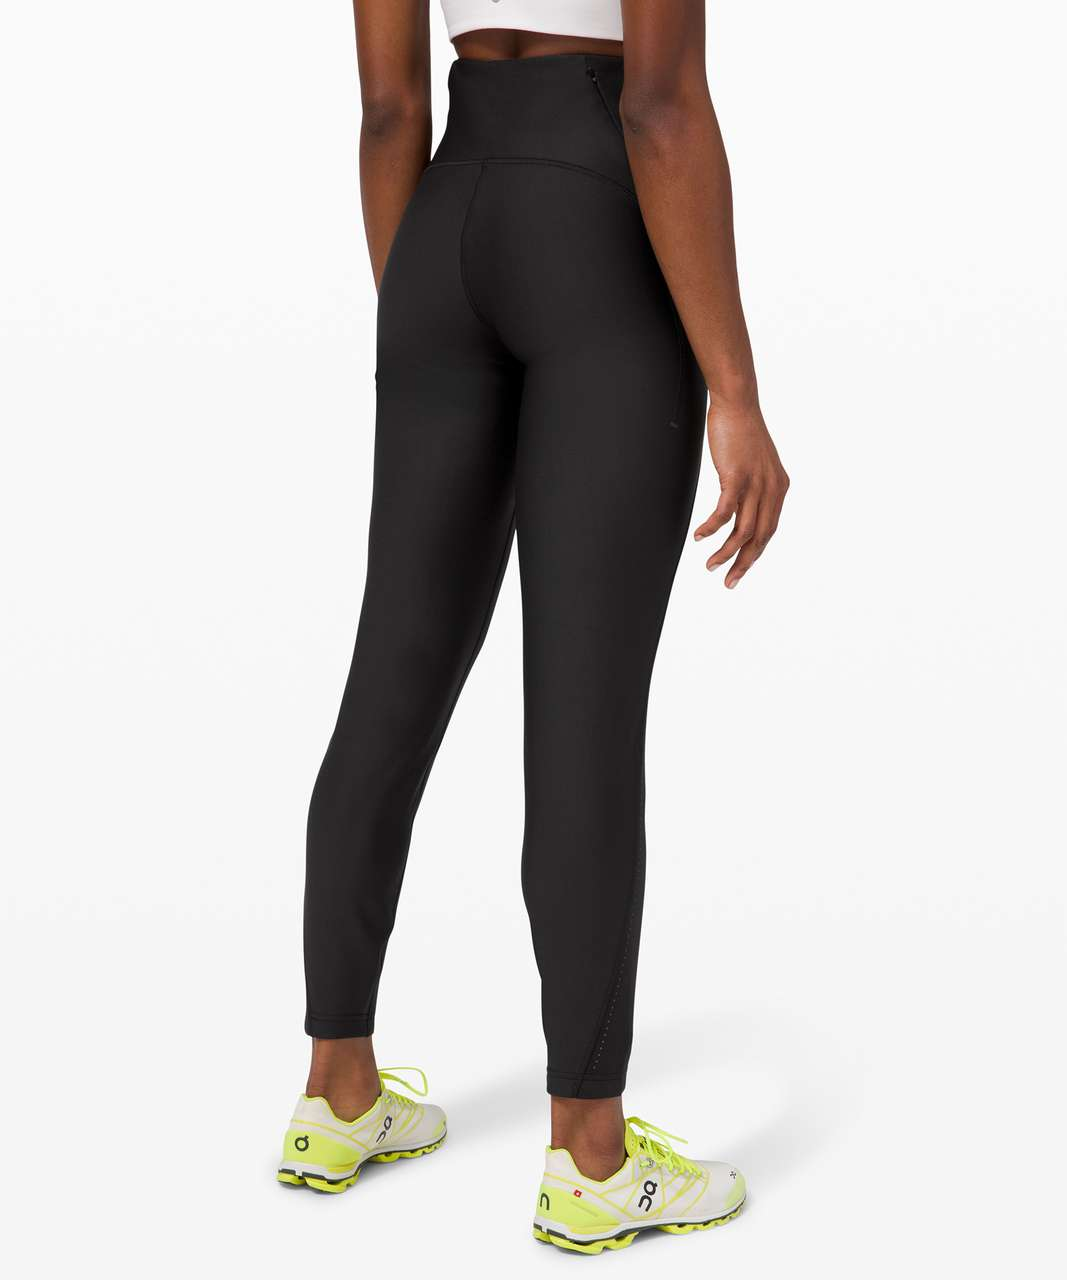 "Lululemon Chase the Chill Super High-Rise Pant 28"" - Black"